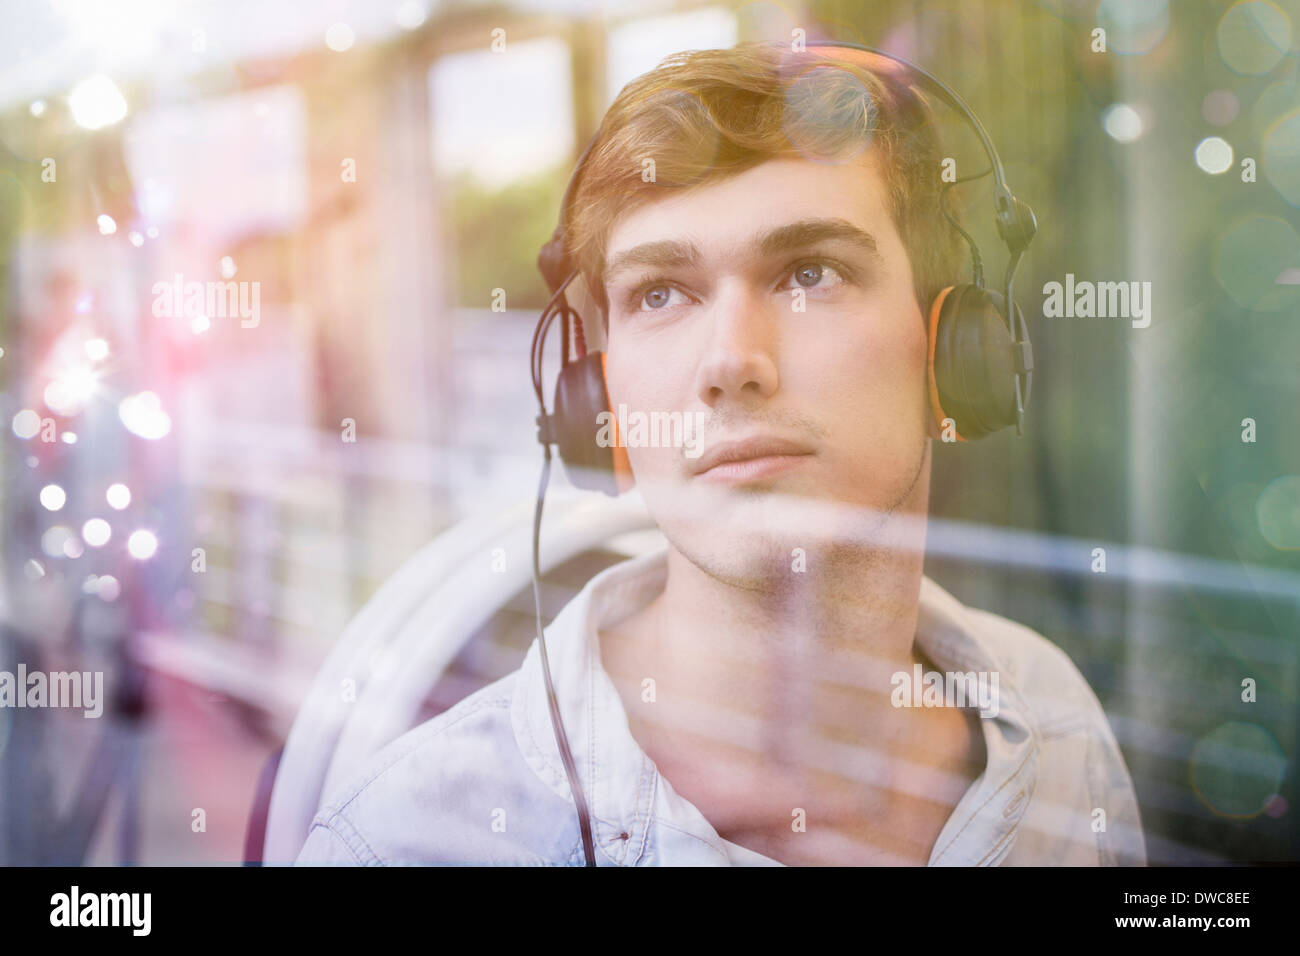 Young man on train, daydreaming and listening to headphones - Stock Image